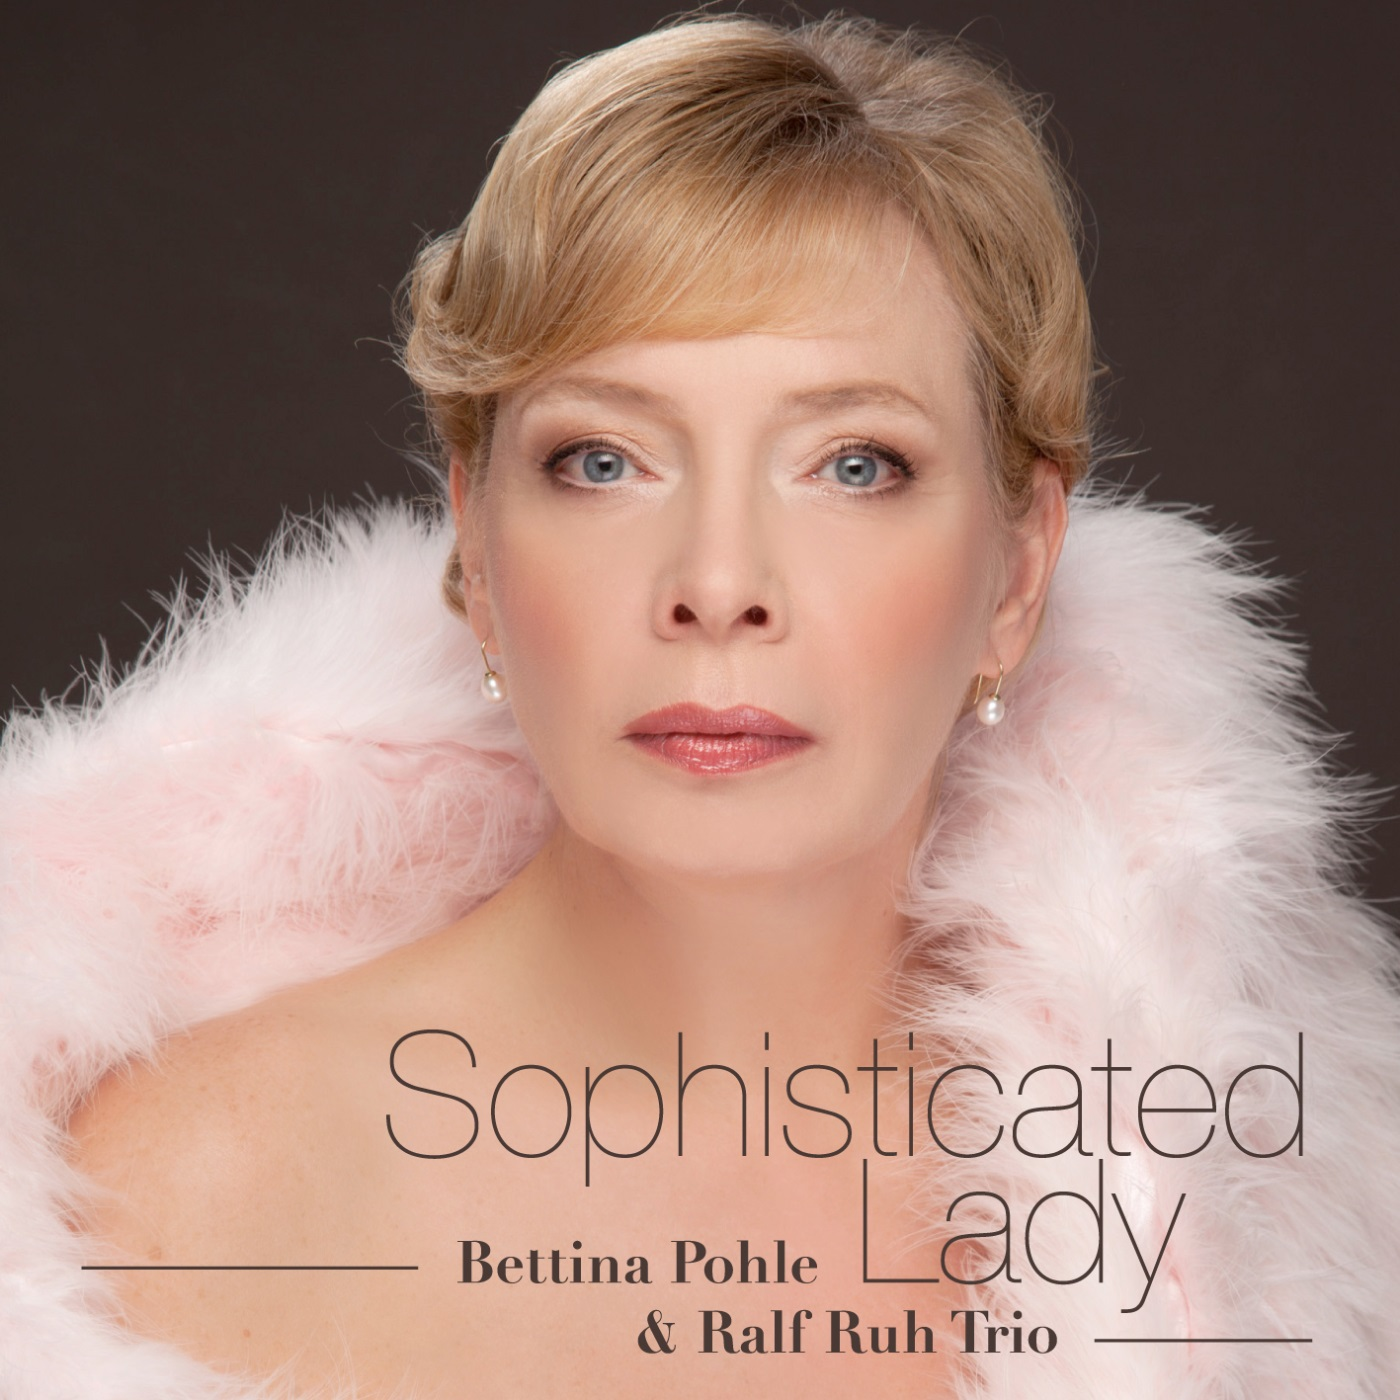 SOPHISTICATED LADY, Bettina Pohle & Ralf Ruh Trio